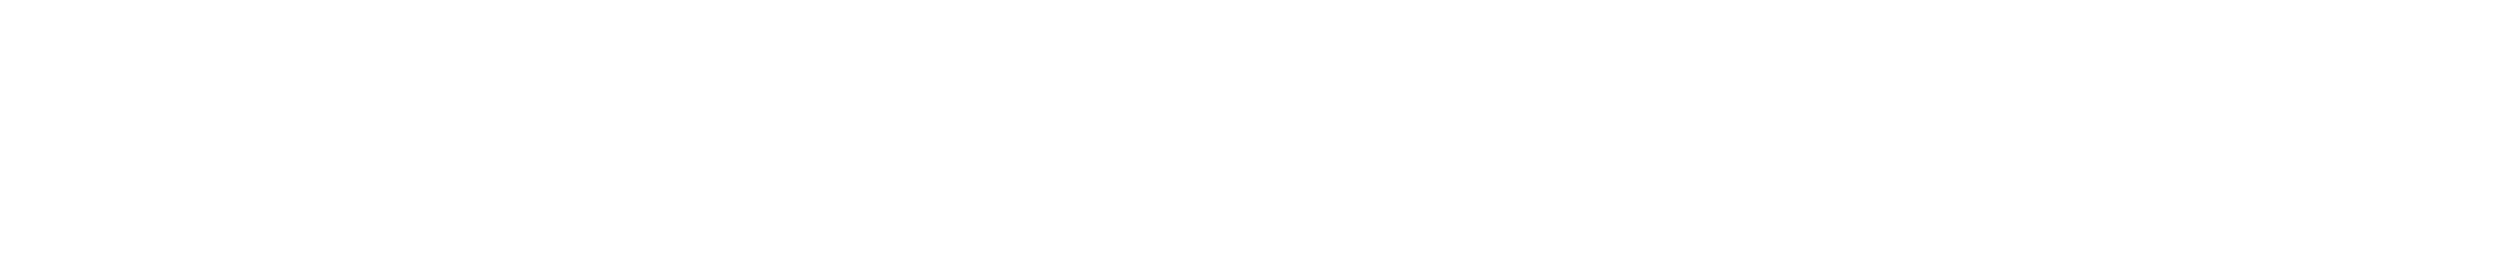 LOGO_ATable_WIT.png